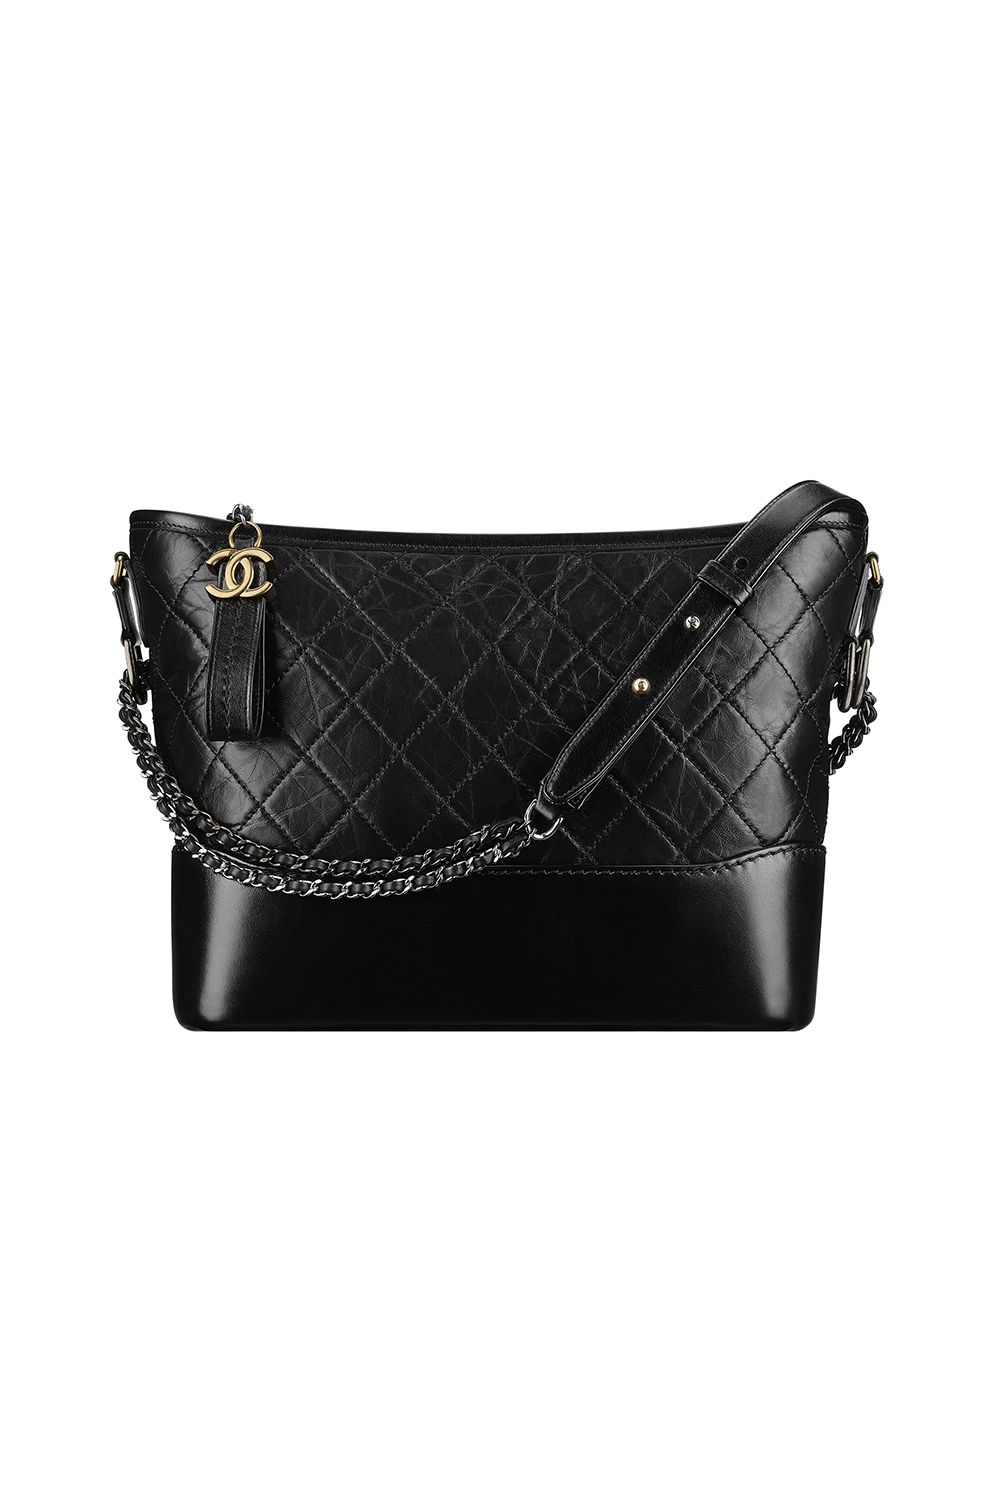 <p>The biggest launch since its cult-favorite Boy bag, expect to see Chanel's new Gabrielle bag everywhere.</p><p>$3,600,&nbsp&#x3B;select Chanel&nbsp&#x3B;boutiques nationwide. <br></p>